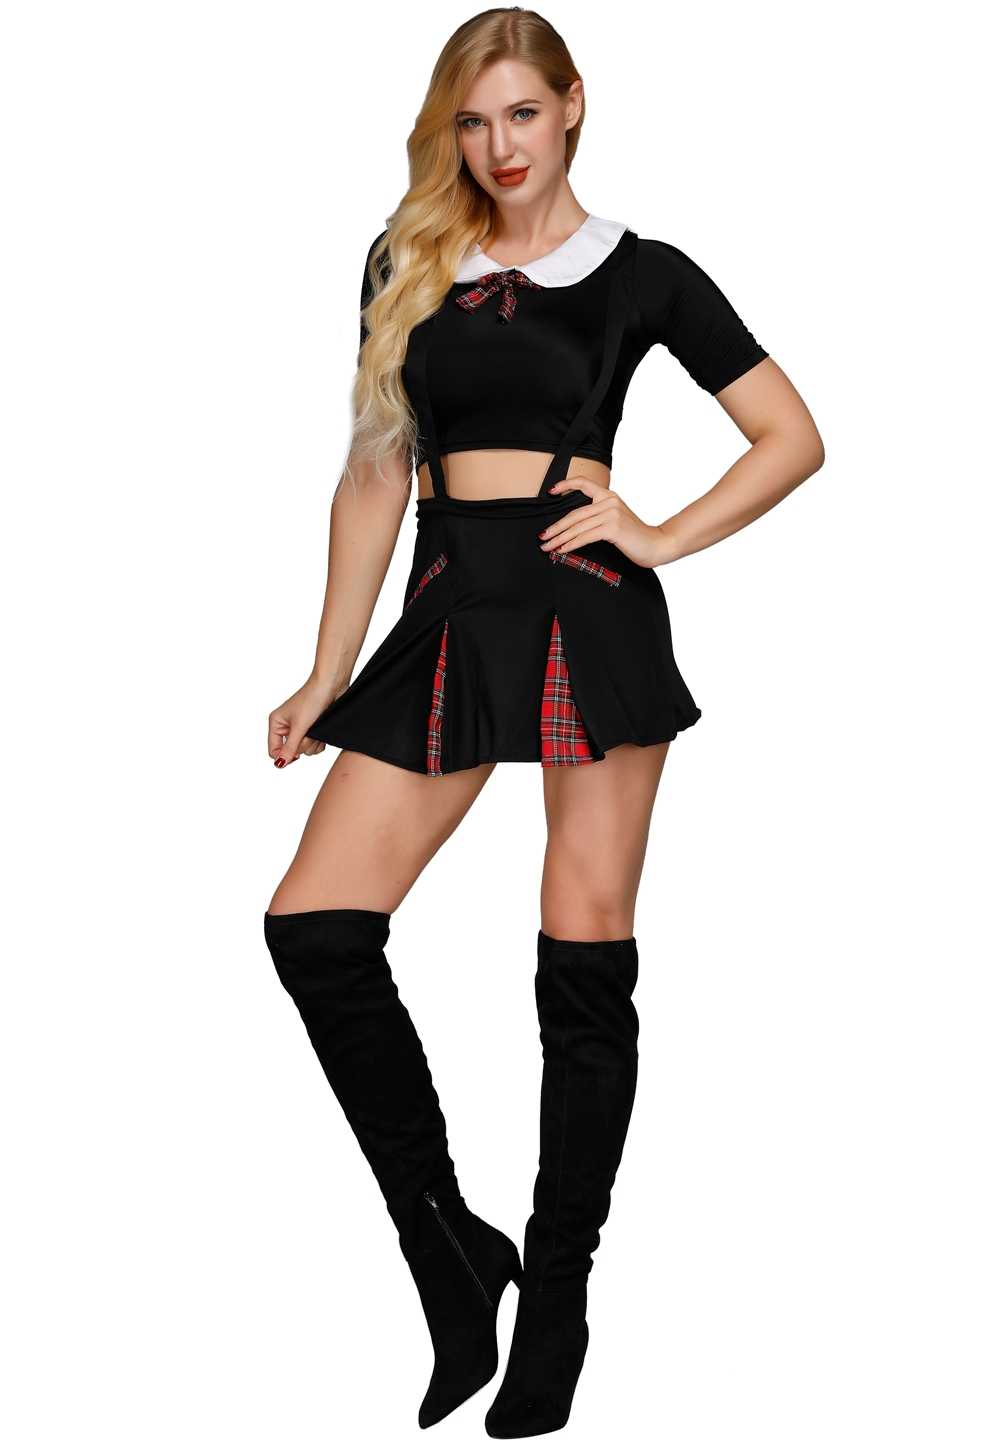 a4fea7032 Adult Naughty School Girl Costume Chic Hot Popular Lovely Fancy Costumes  Schoolgirls Womens Party Costumes Dress